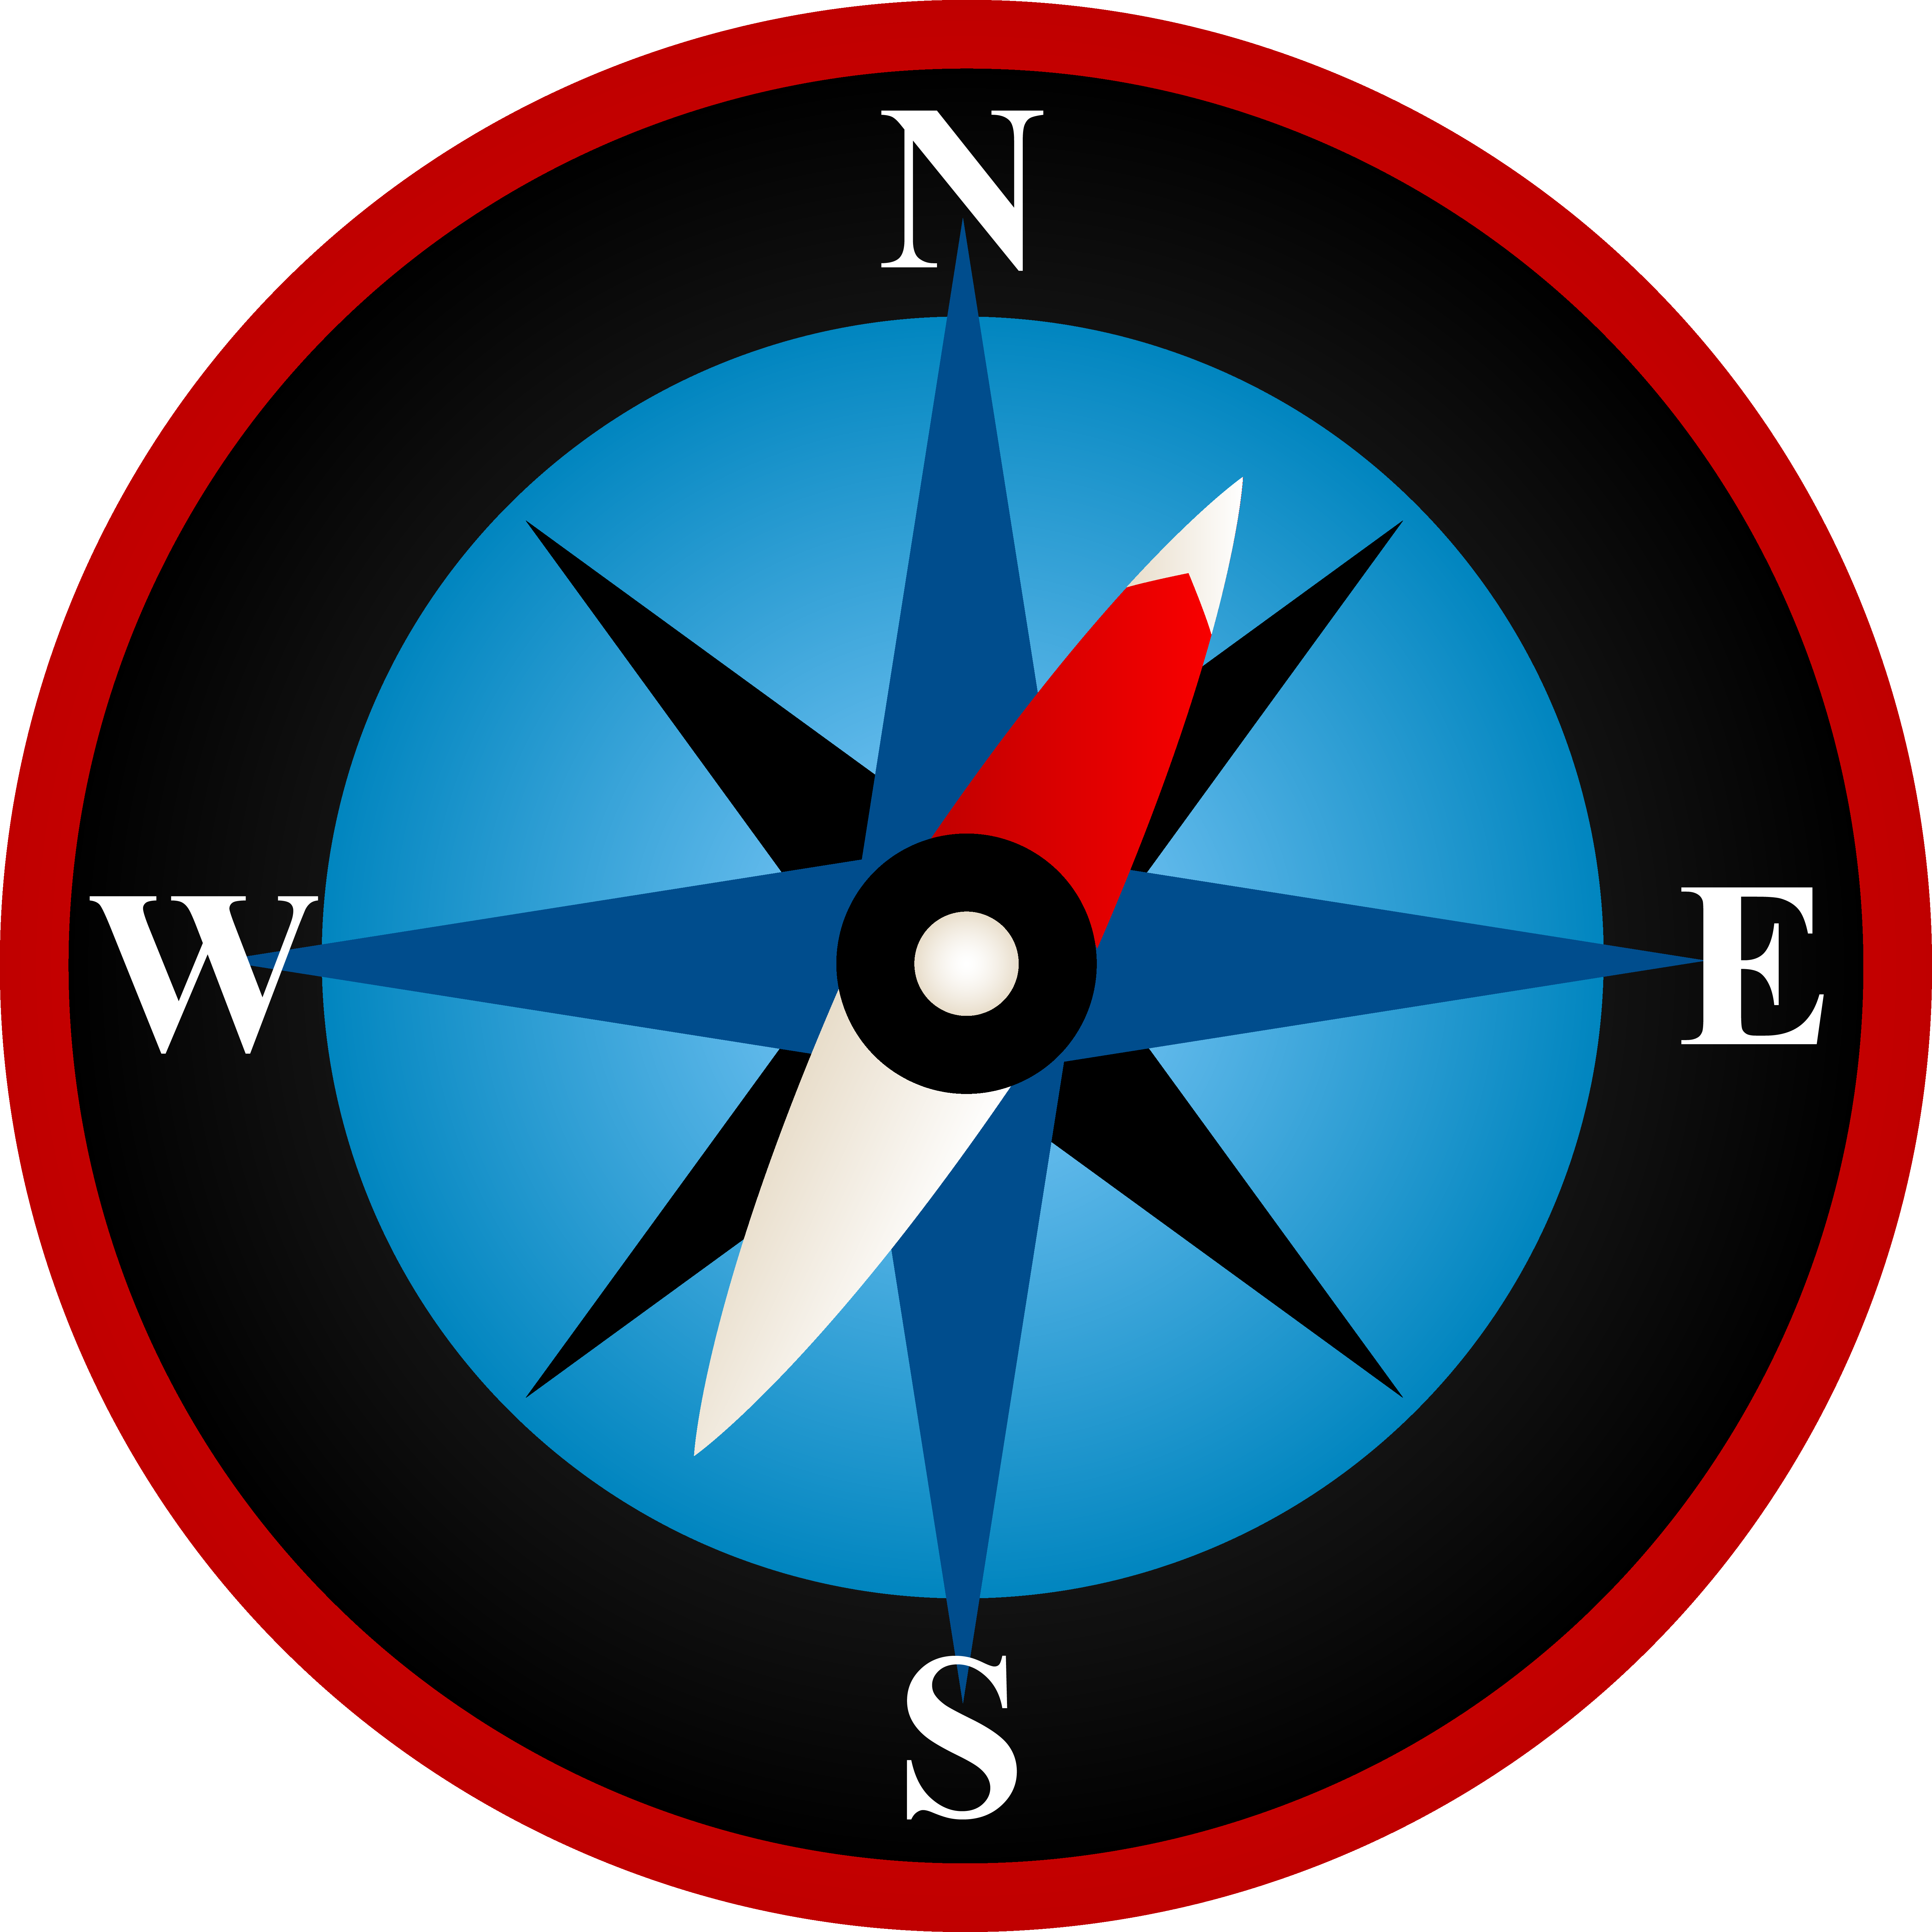 Compass clipart geography subject. Free cliparts download clip